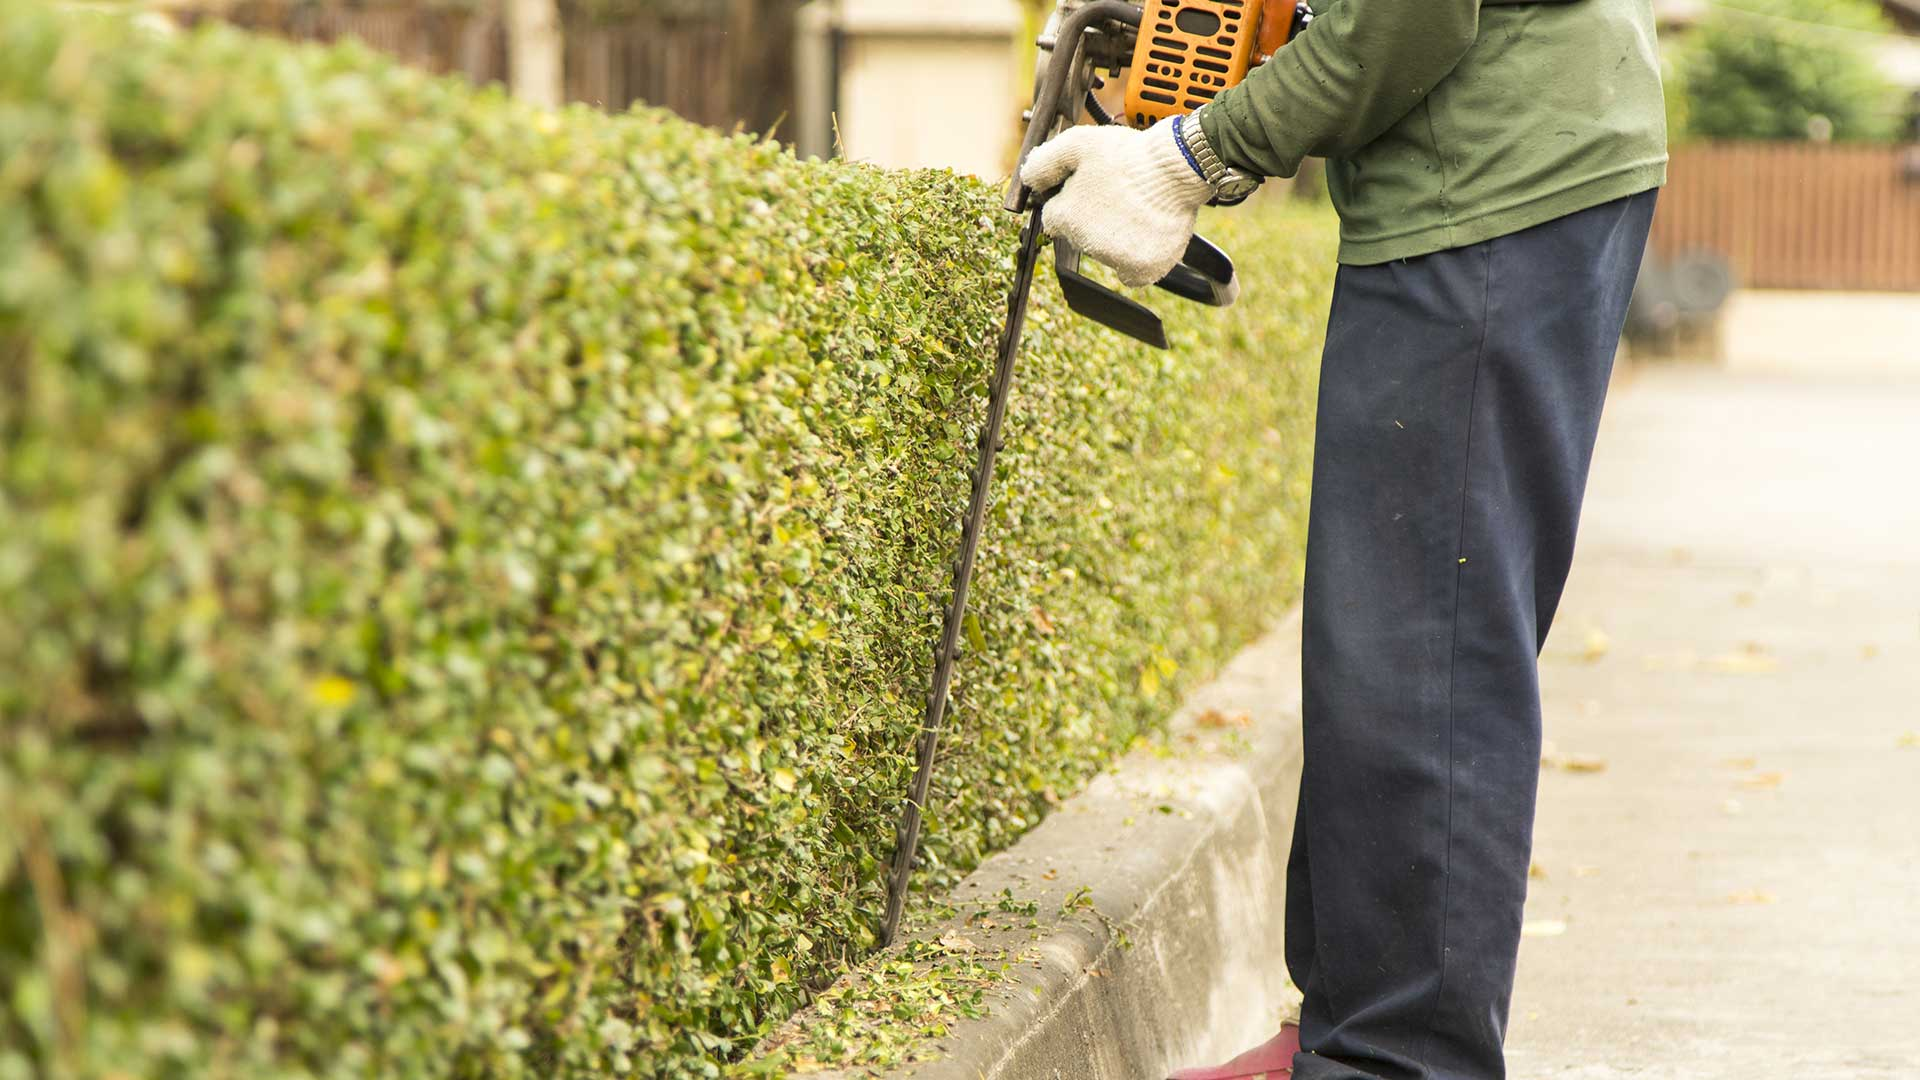 Sunnydale Lawn Care team member trimming hedges with a professional power trimmer.